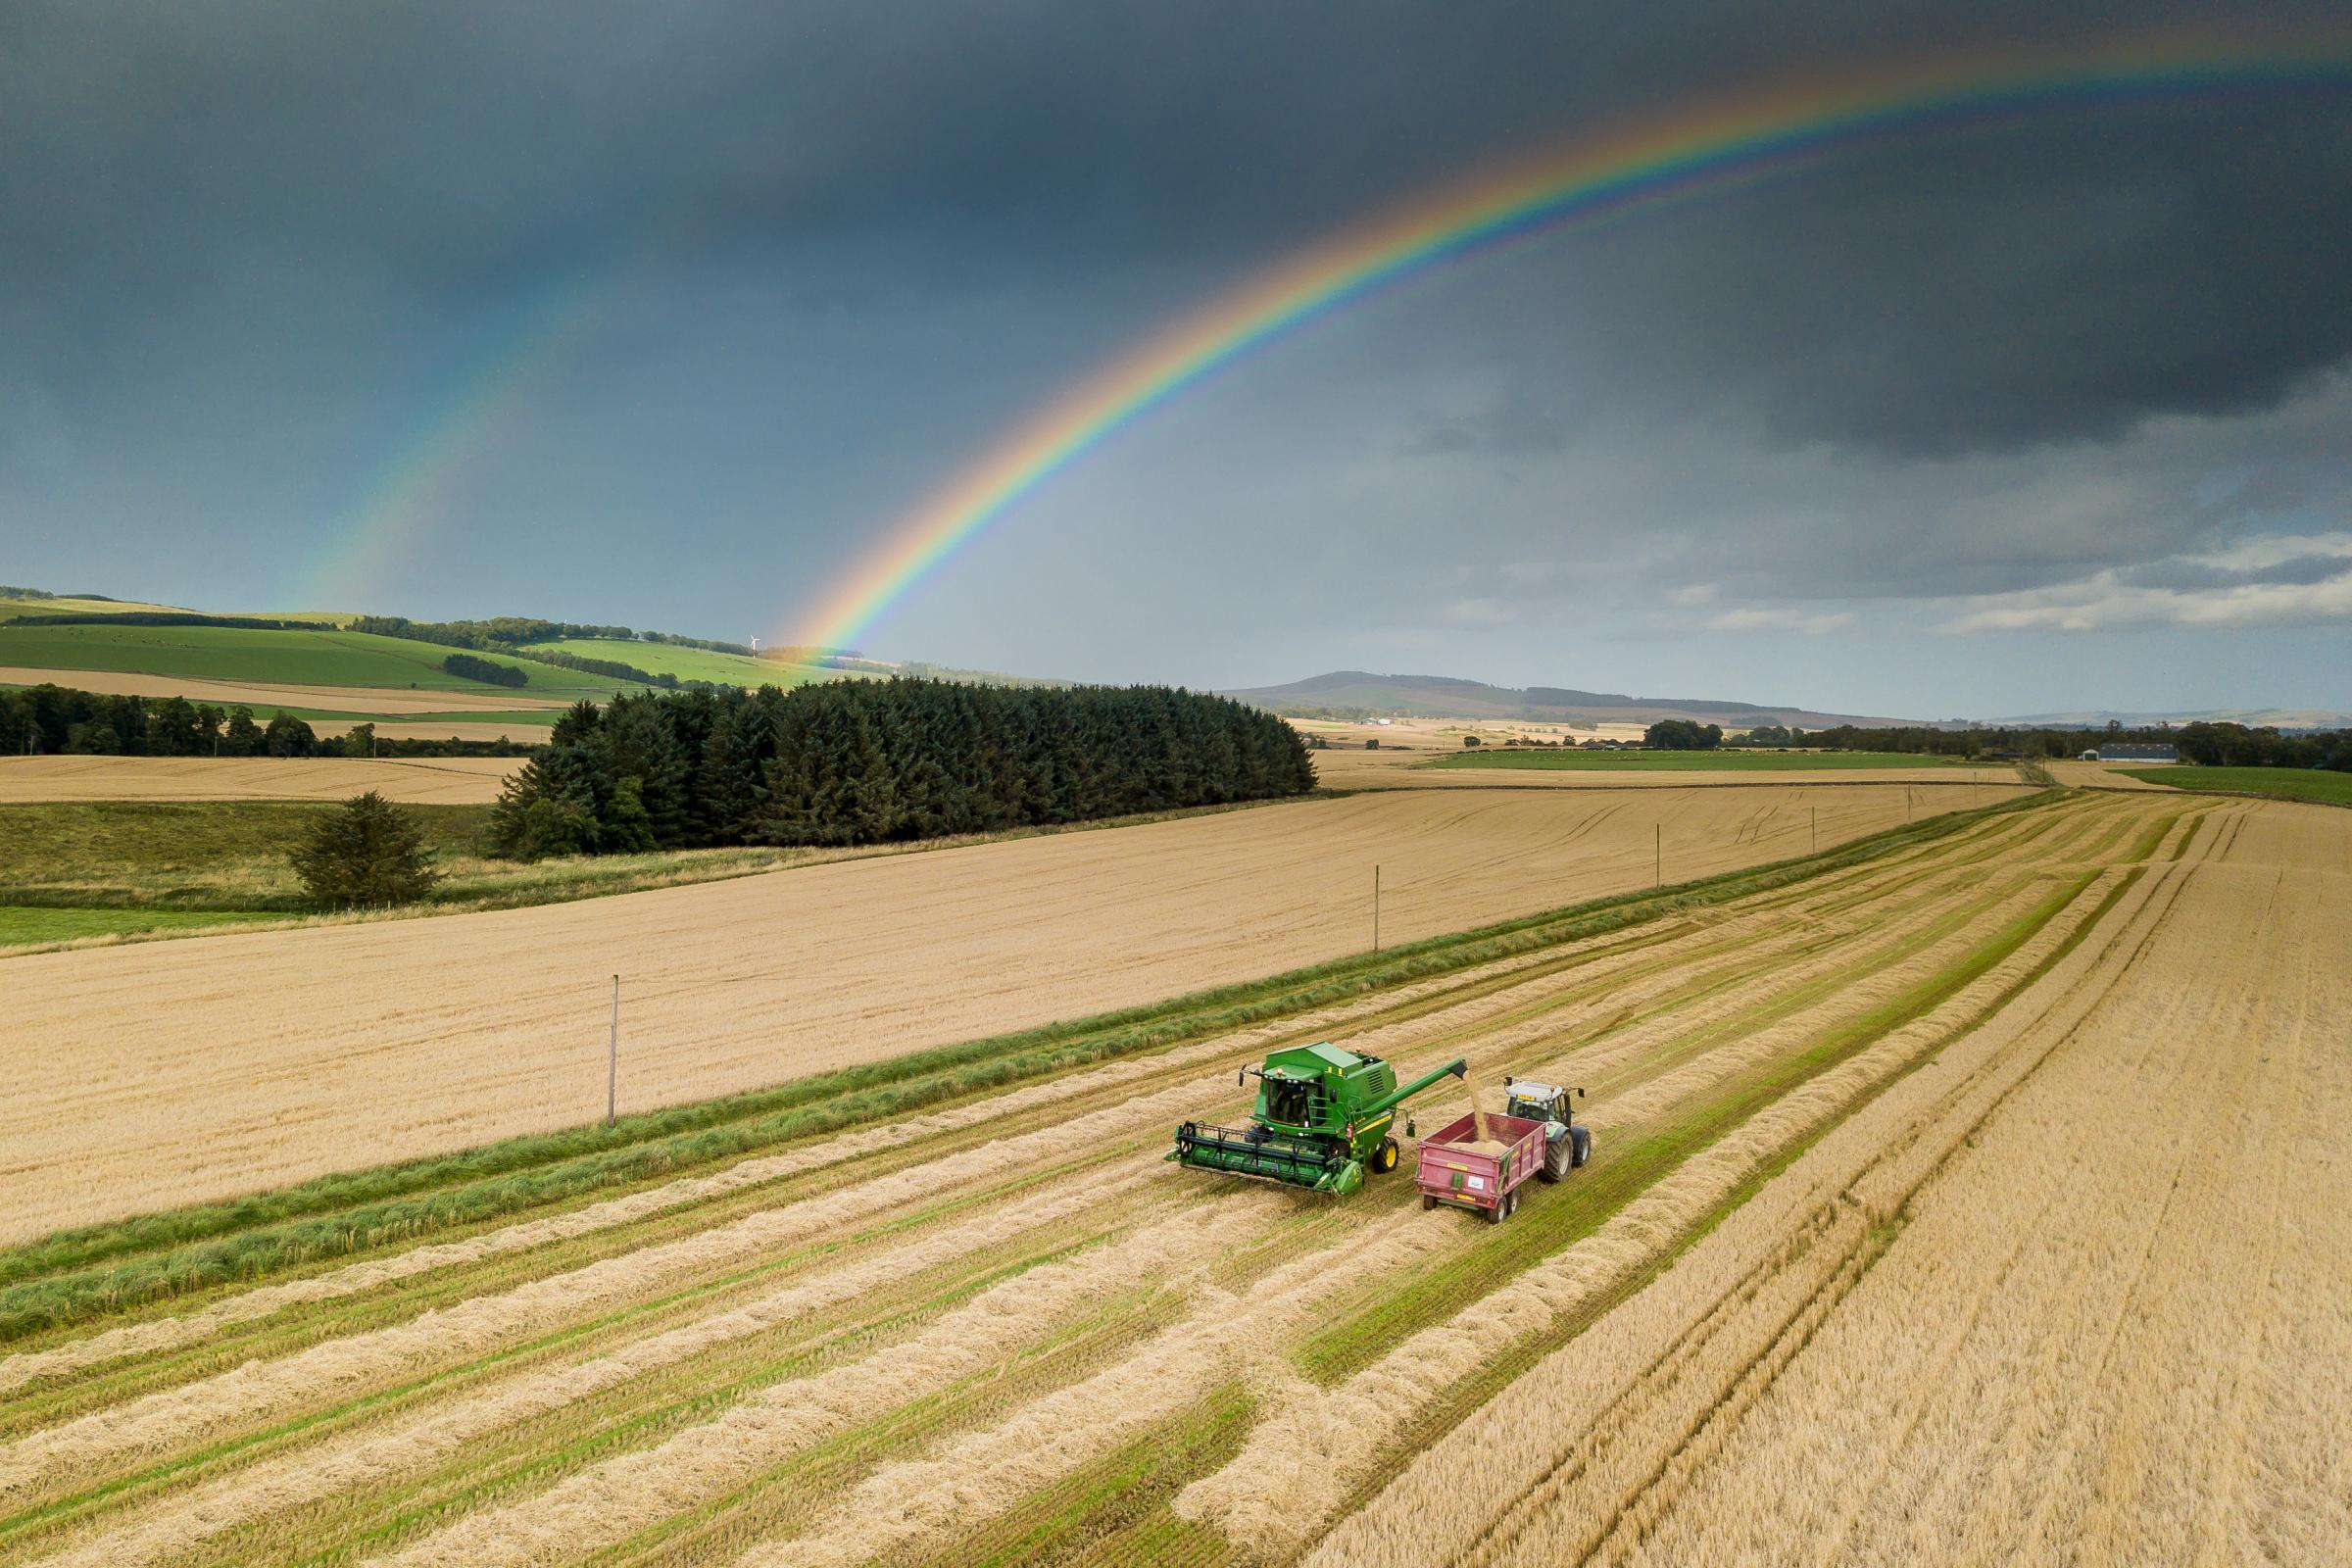 RAINBOW HARVEST driving this combine at Shandford, Brechin is Ally Mather, with Grant Mather carting off (Pic: Ian McLachlan)